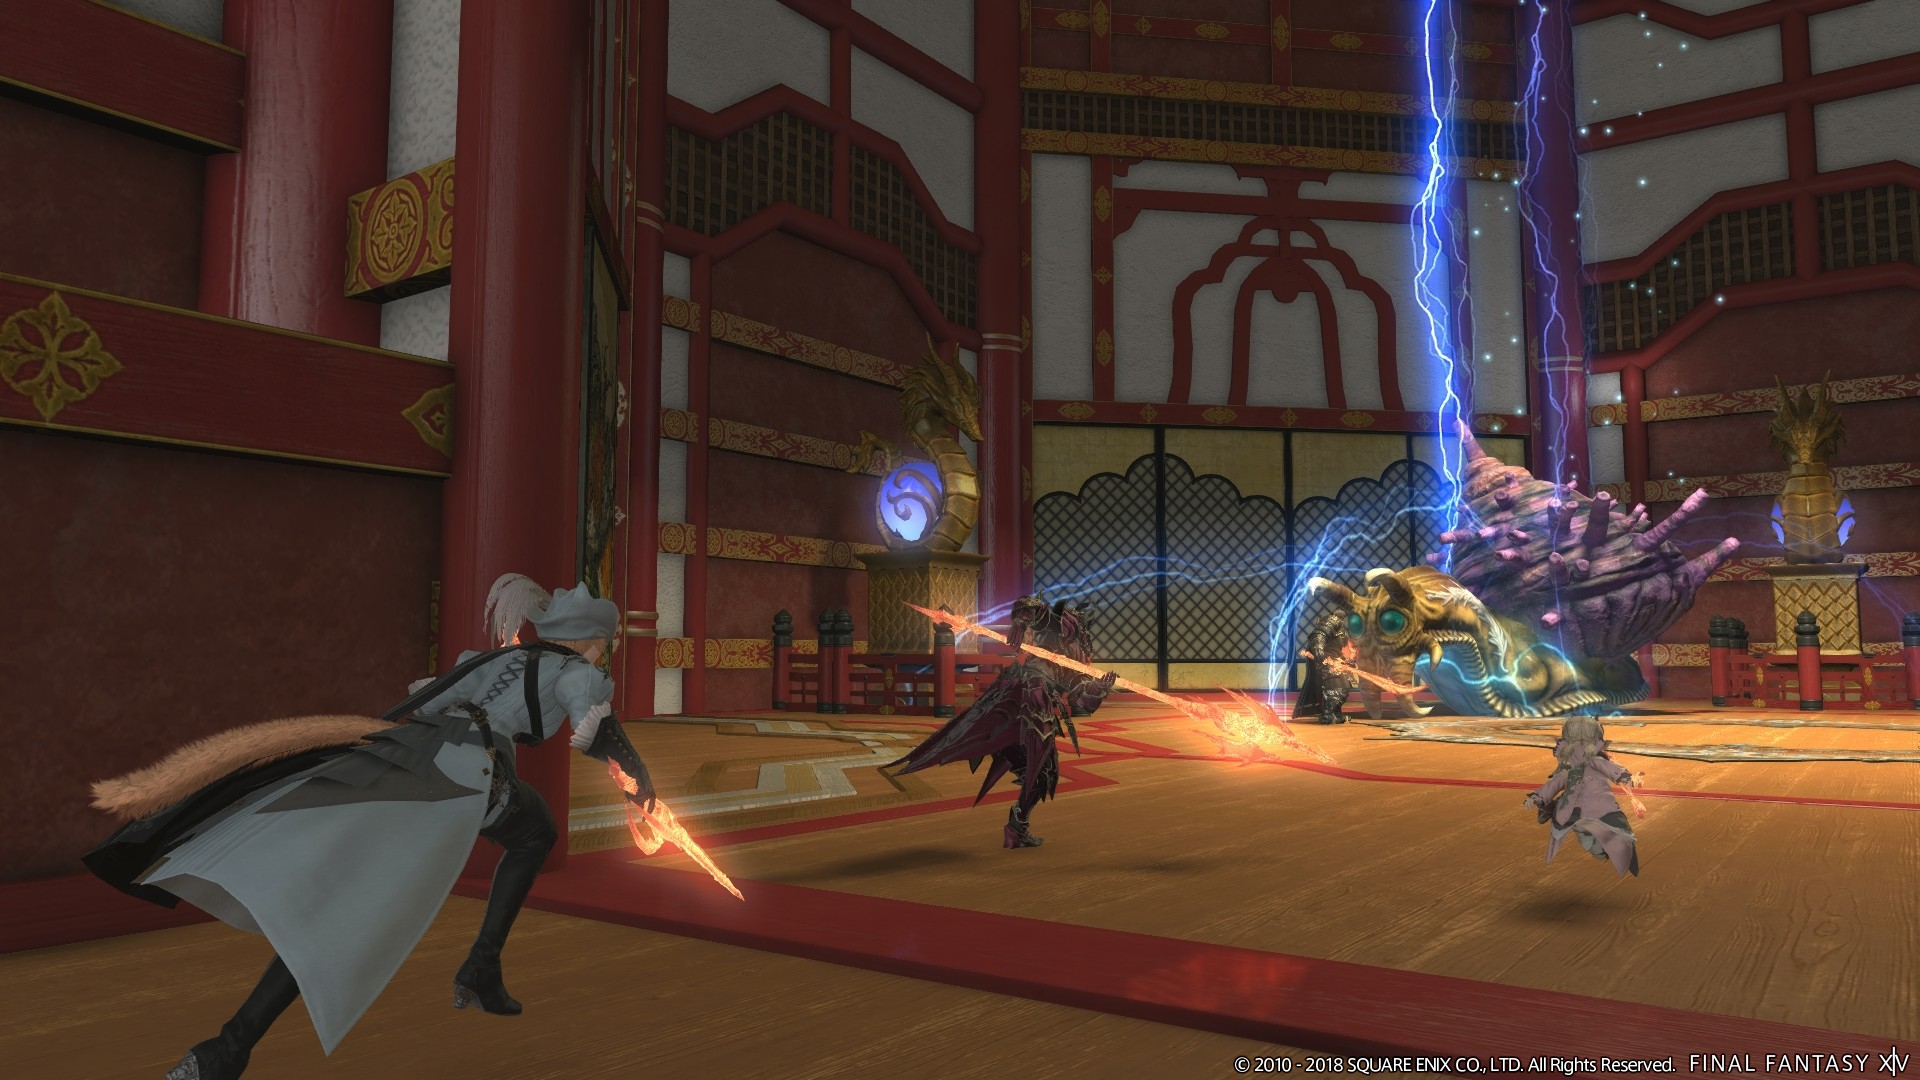 Final Fantasy XIV fight